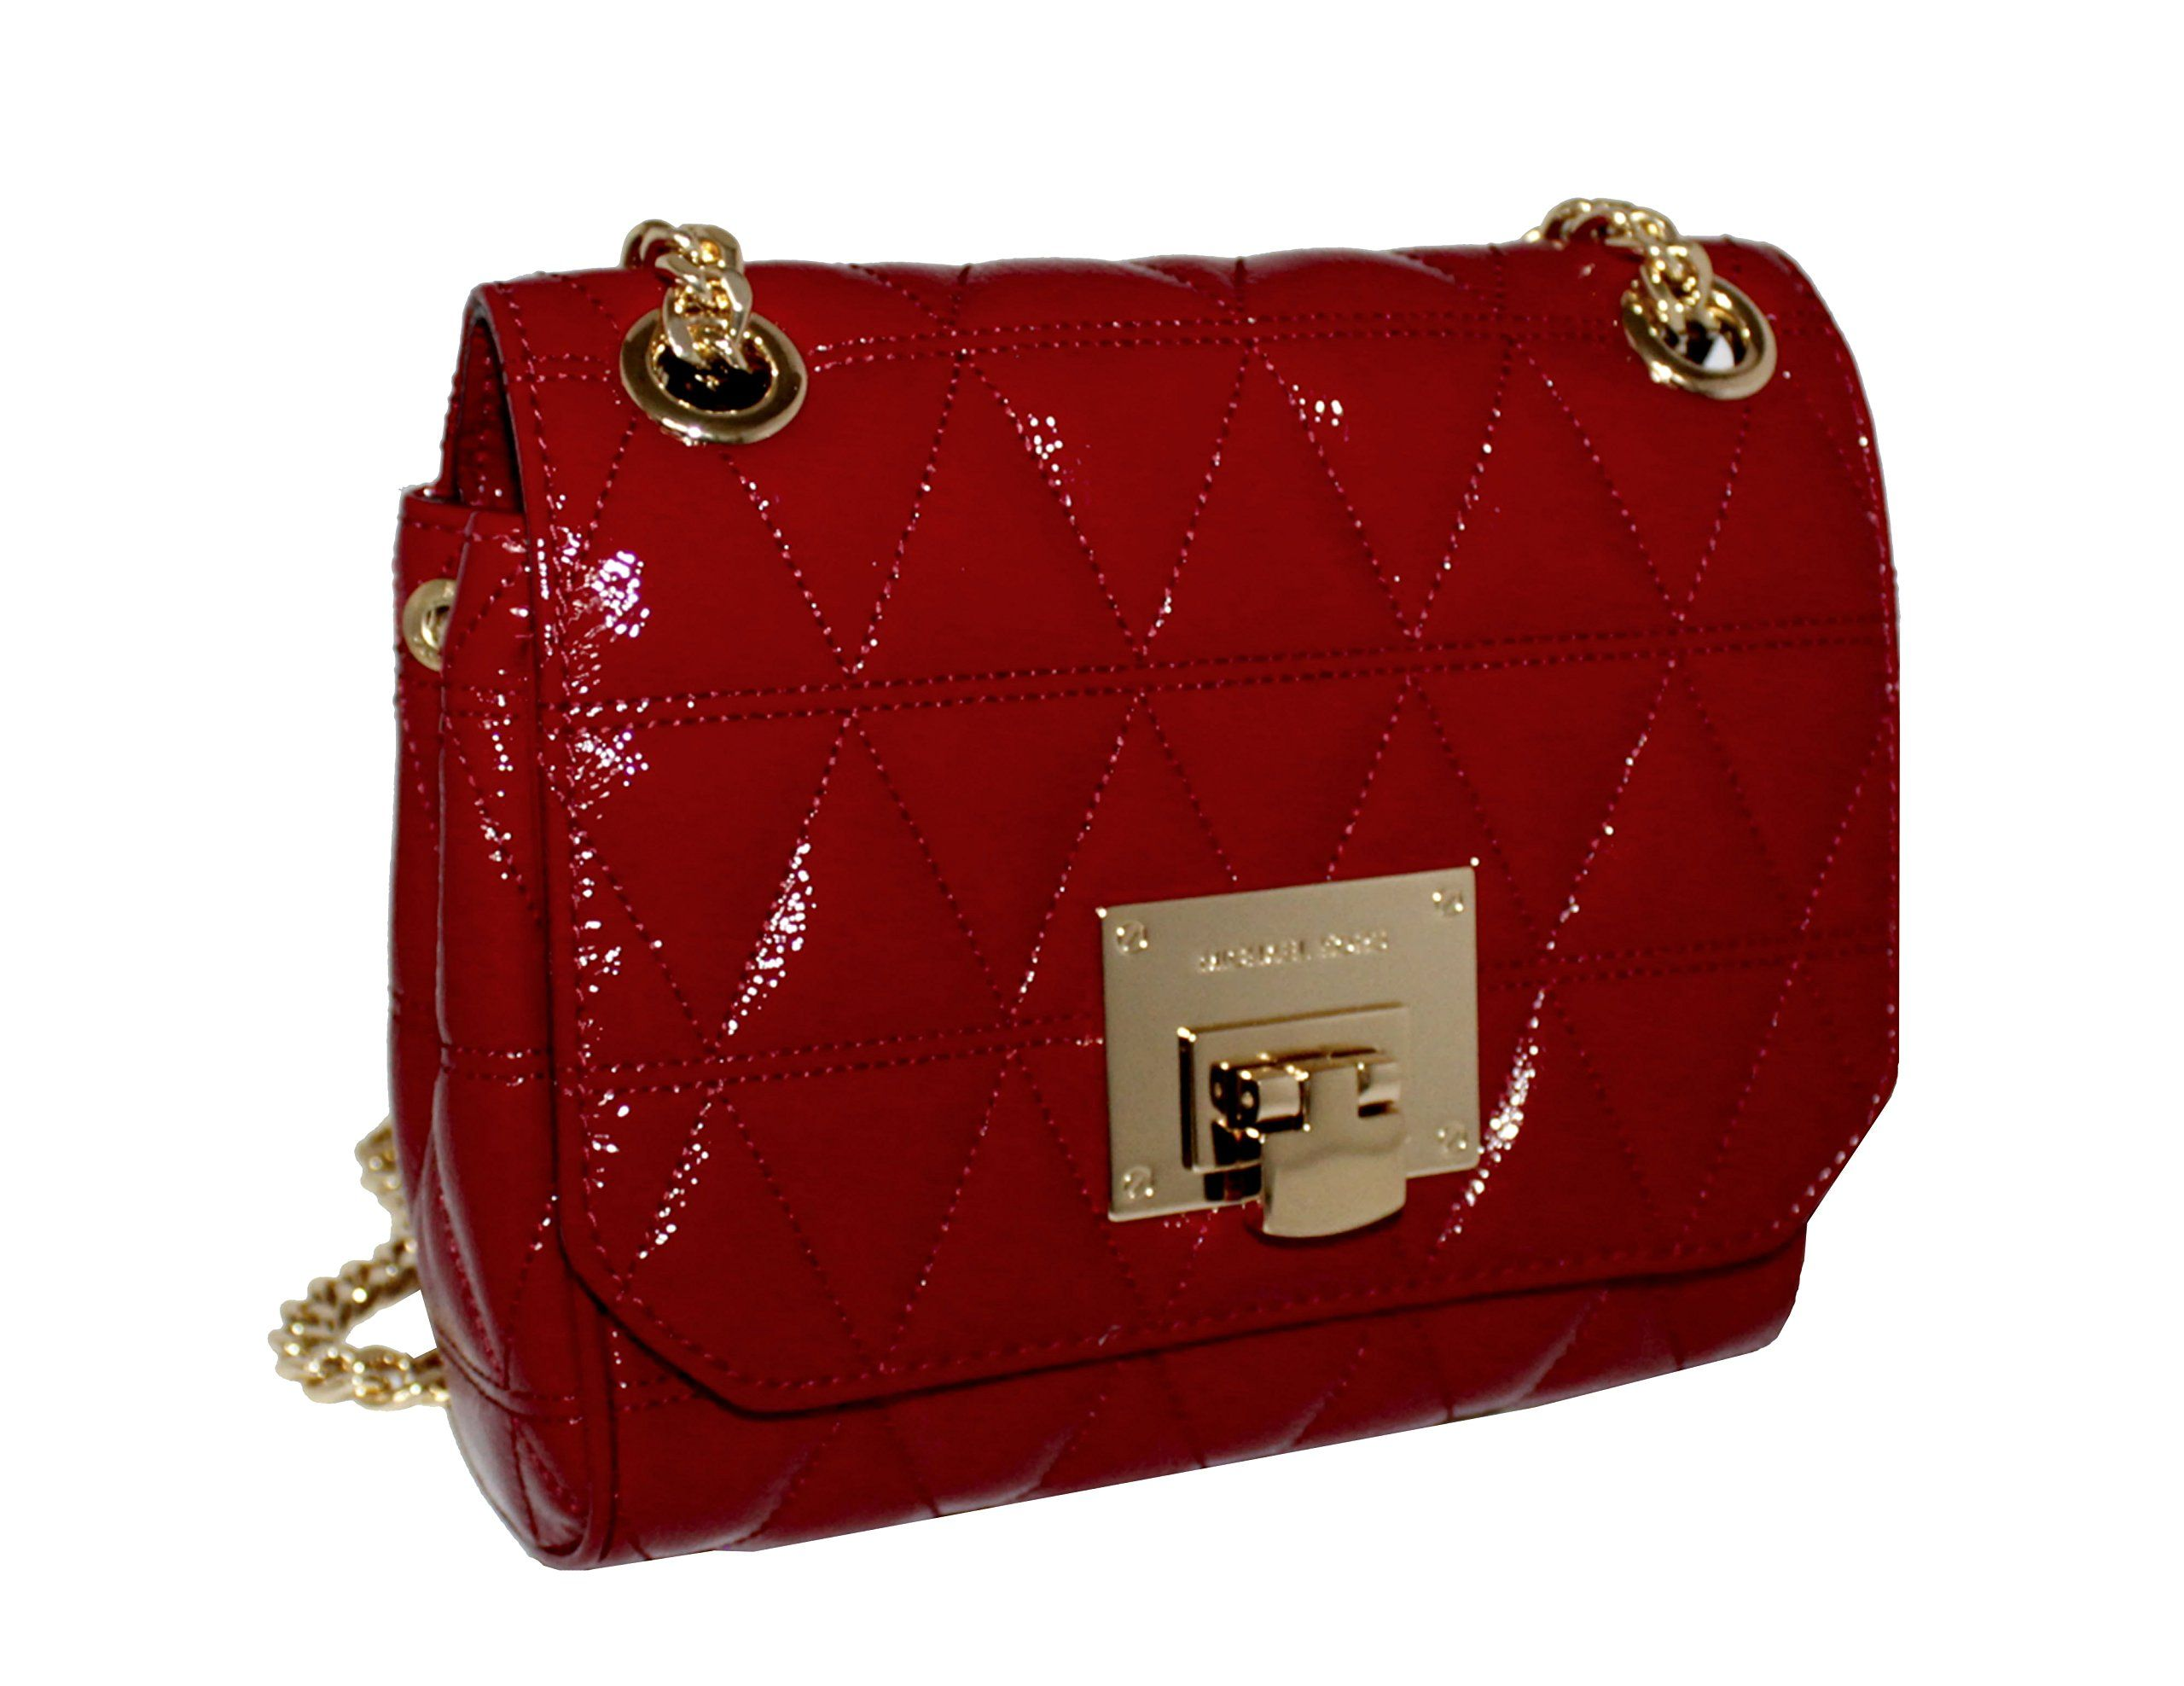 b24b316edd5c MICHAEL Michael Kors VIVIANNE Small Womens Shoulder Flap Leather Handbag  Cherry   Many thanks for visiting our picture. (This is our affiliate link)    ...